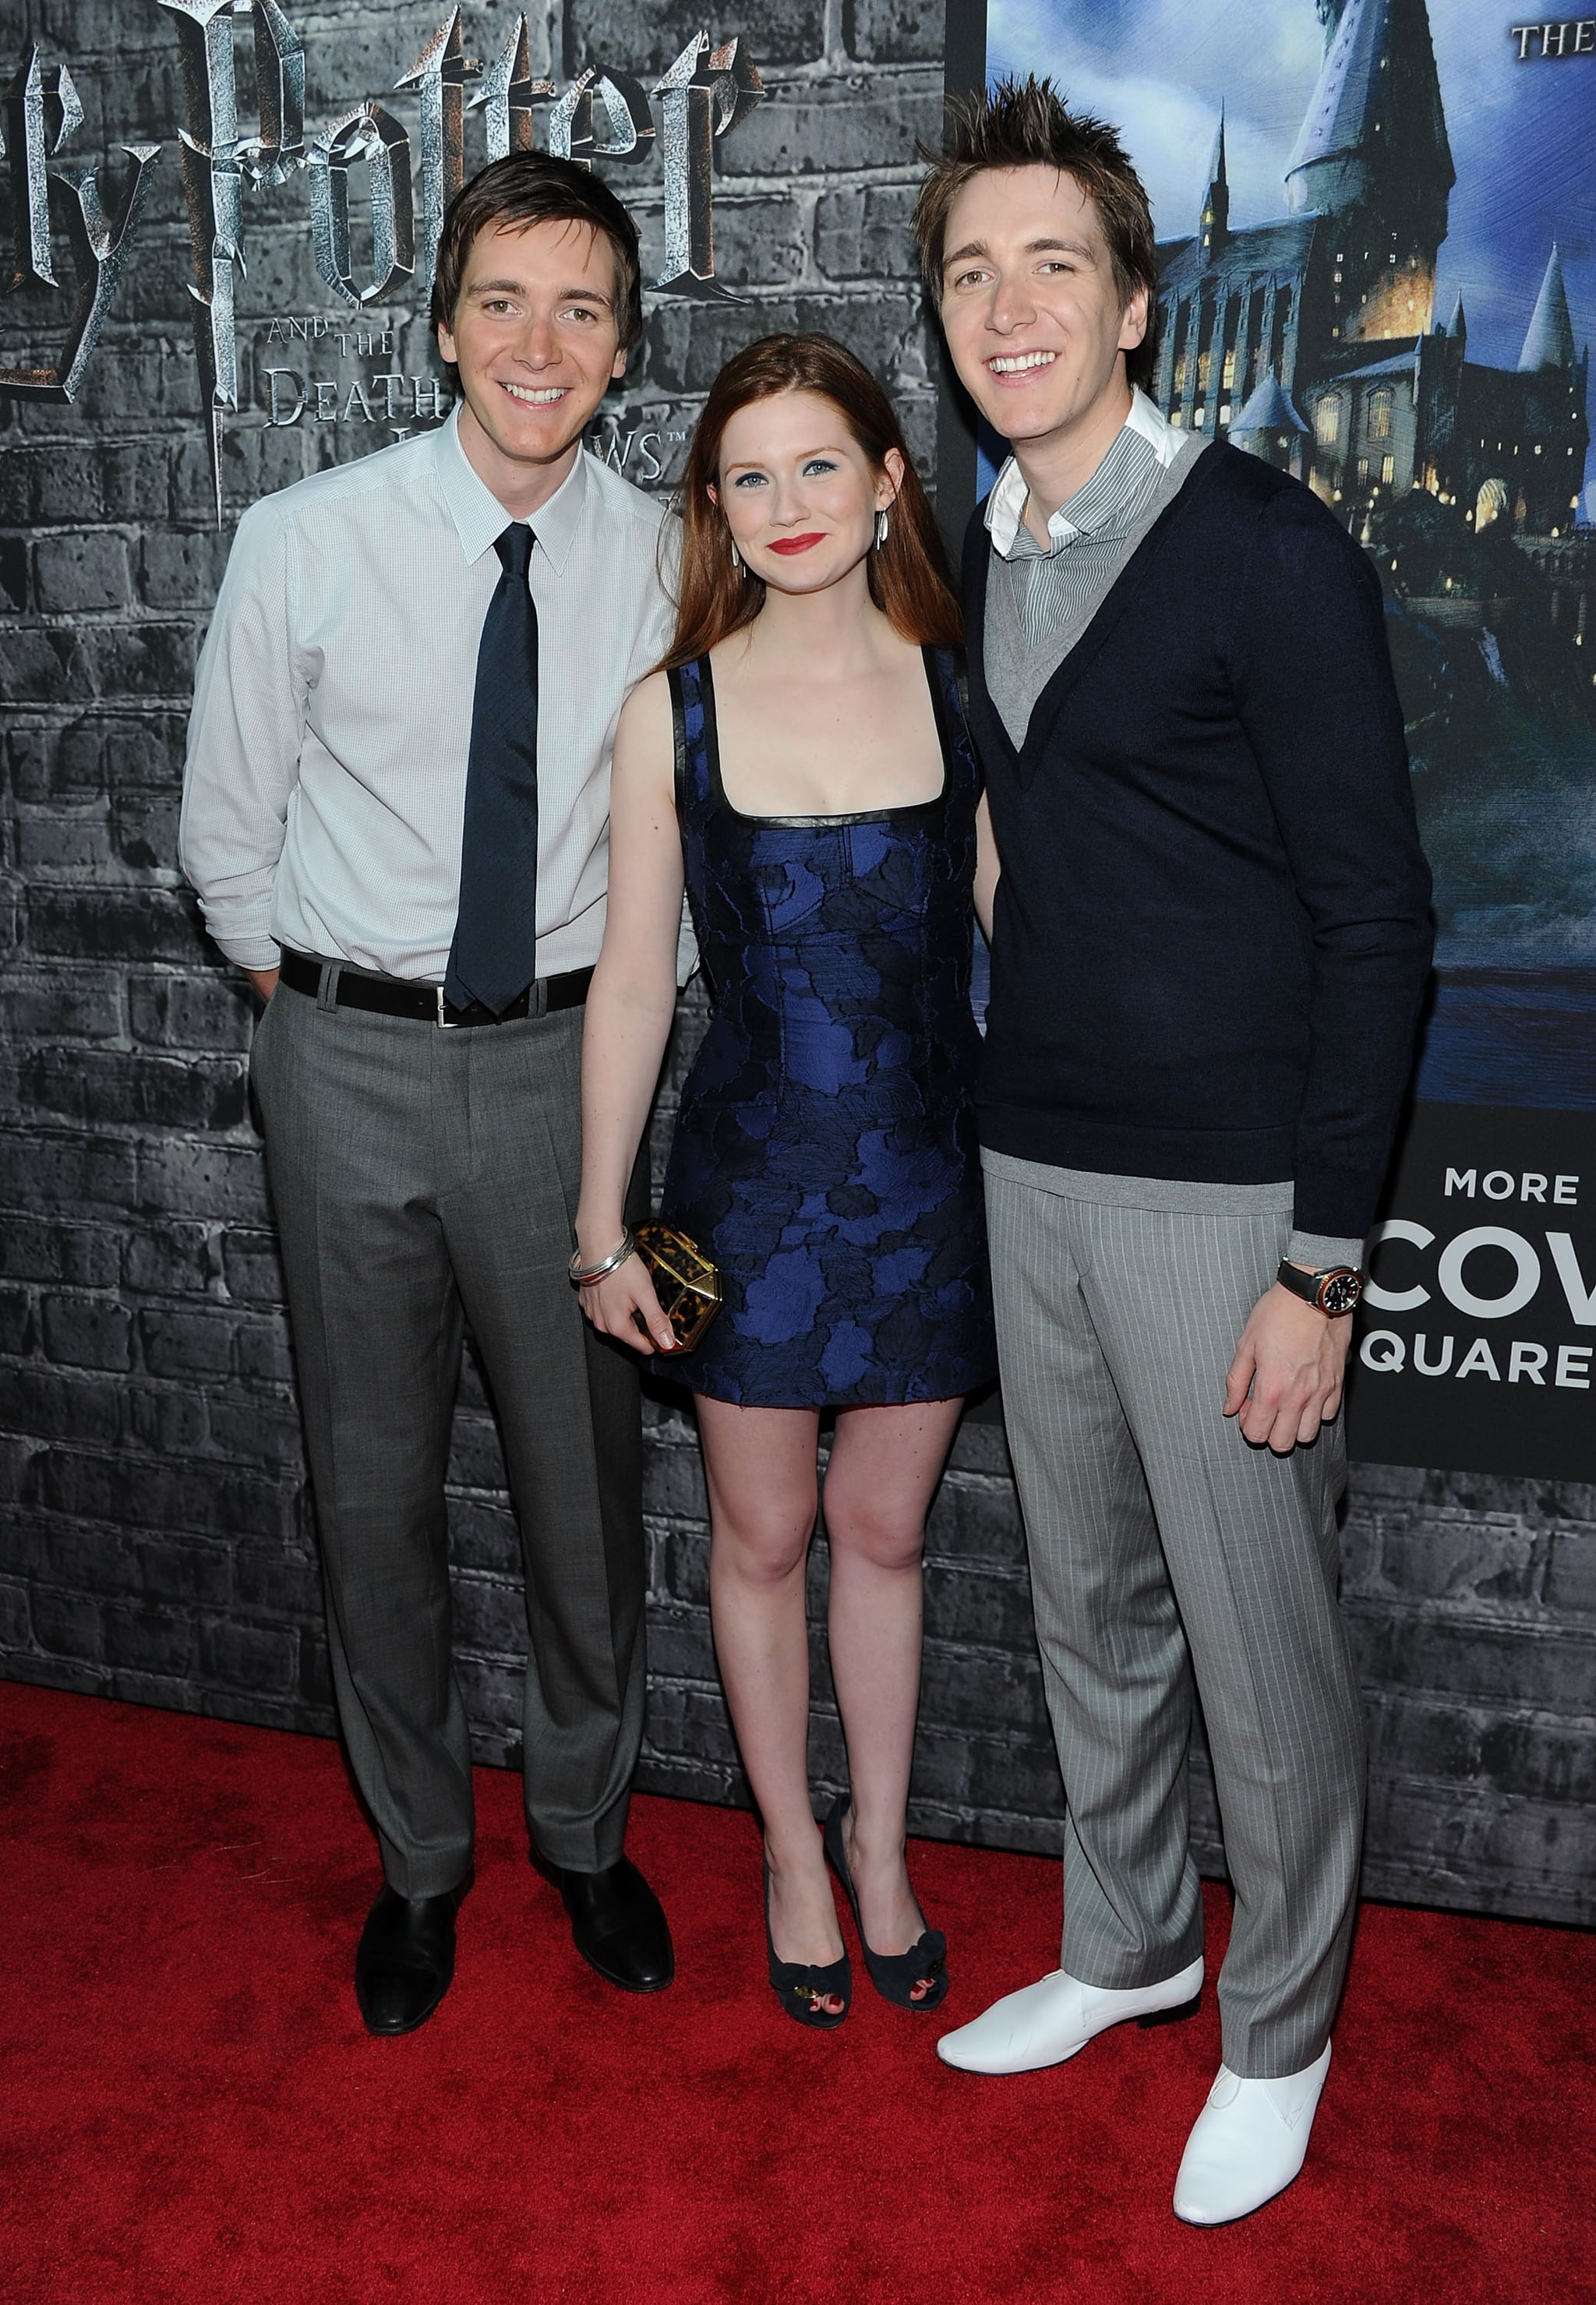 Oliver Phelps, Bonnie Wright and James Phelps